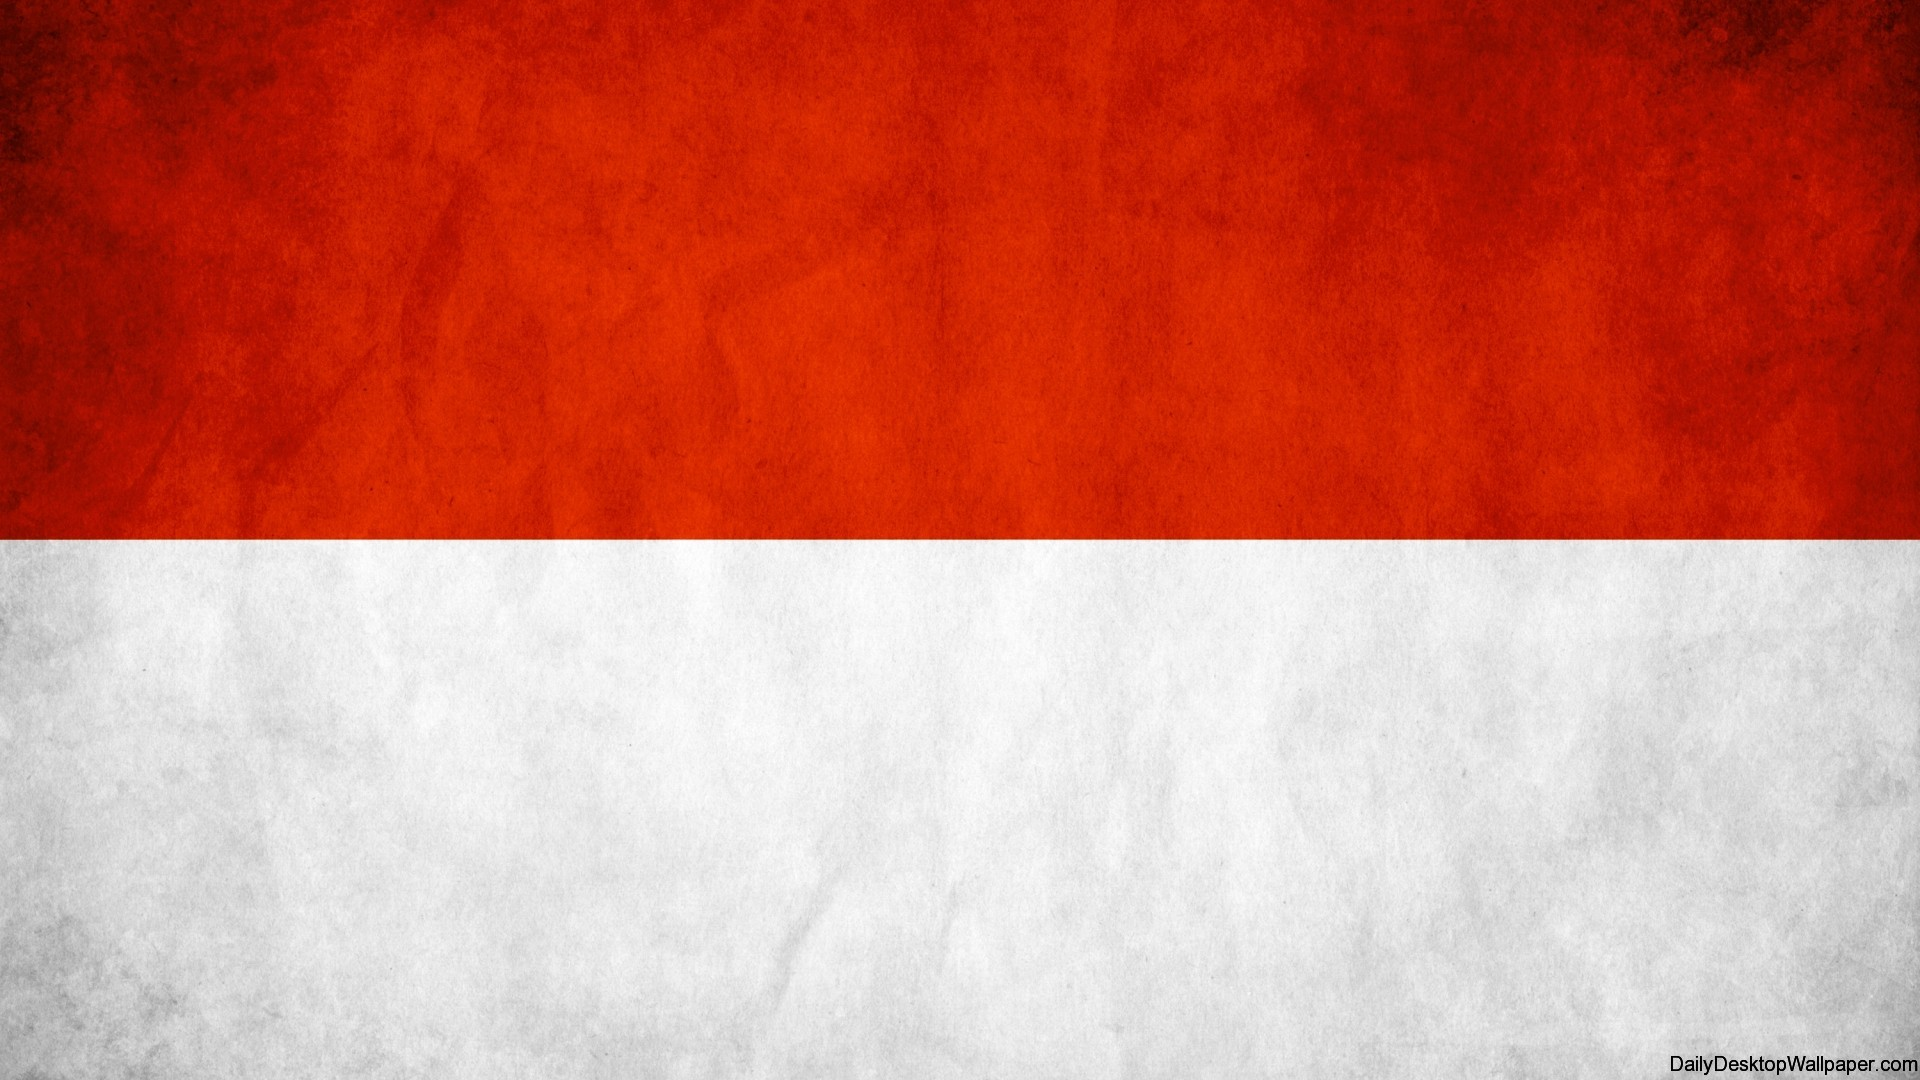 Indonesia flag wallpaper